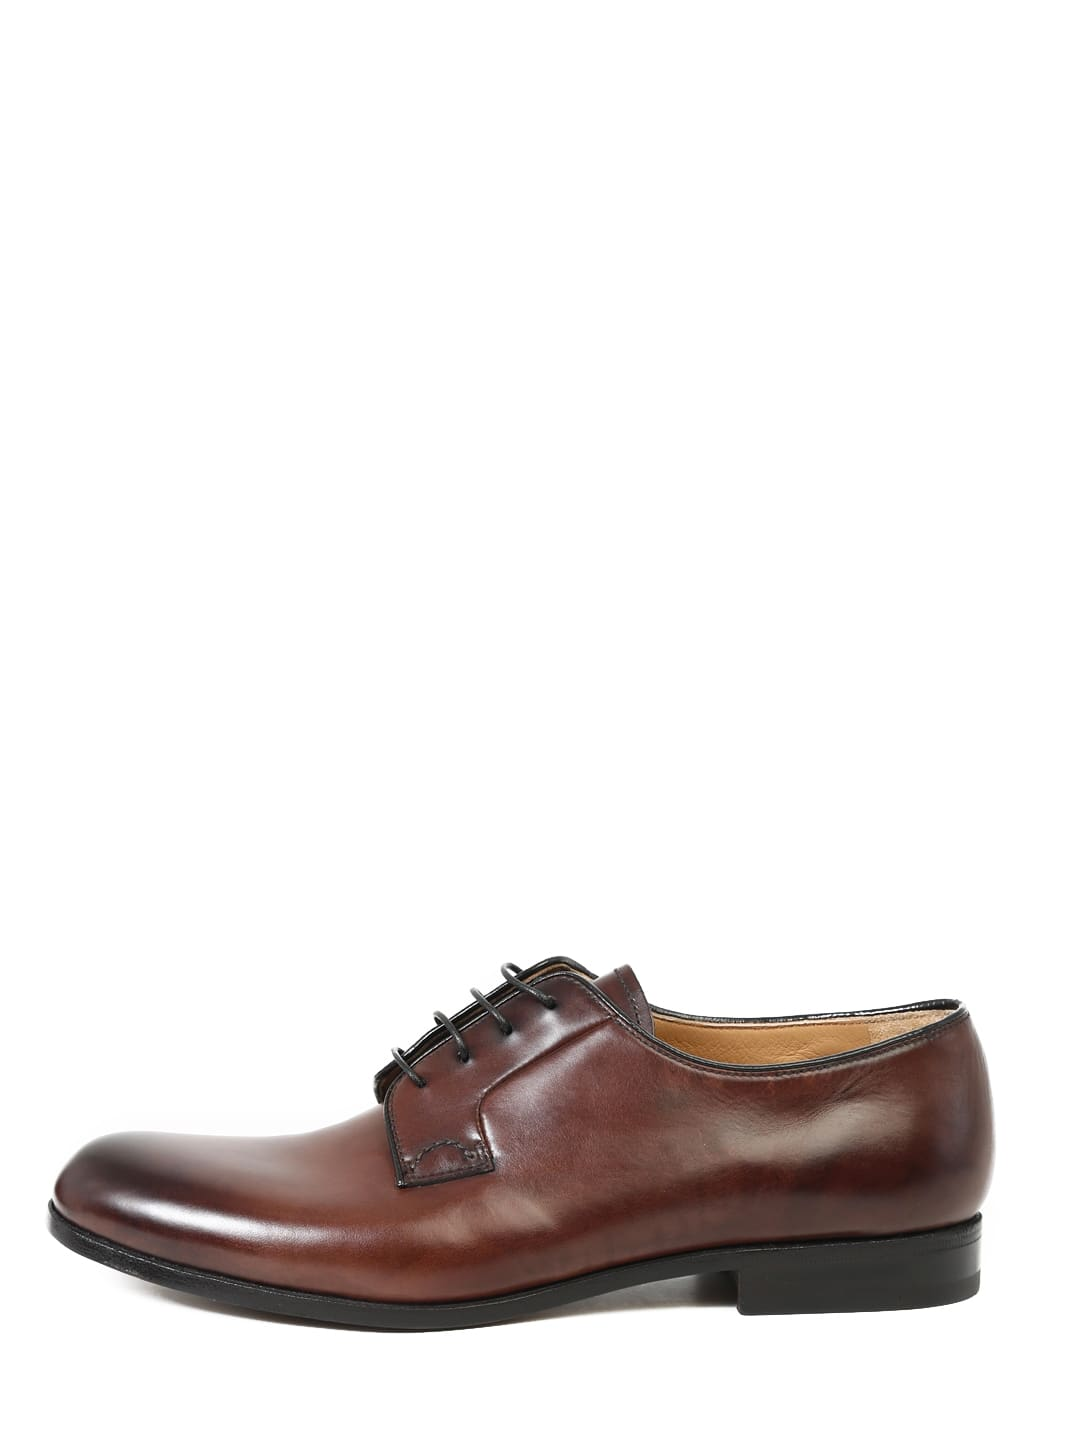 Churchs Leather Lace-up Shoes Brown